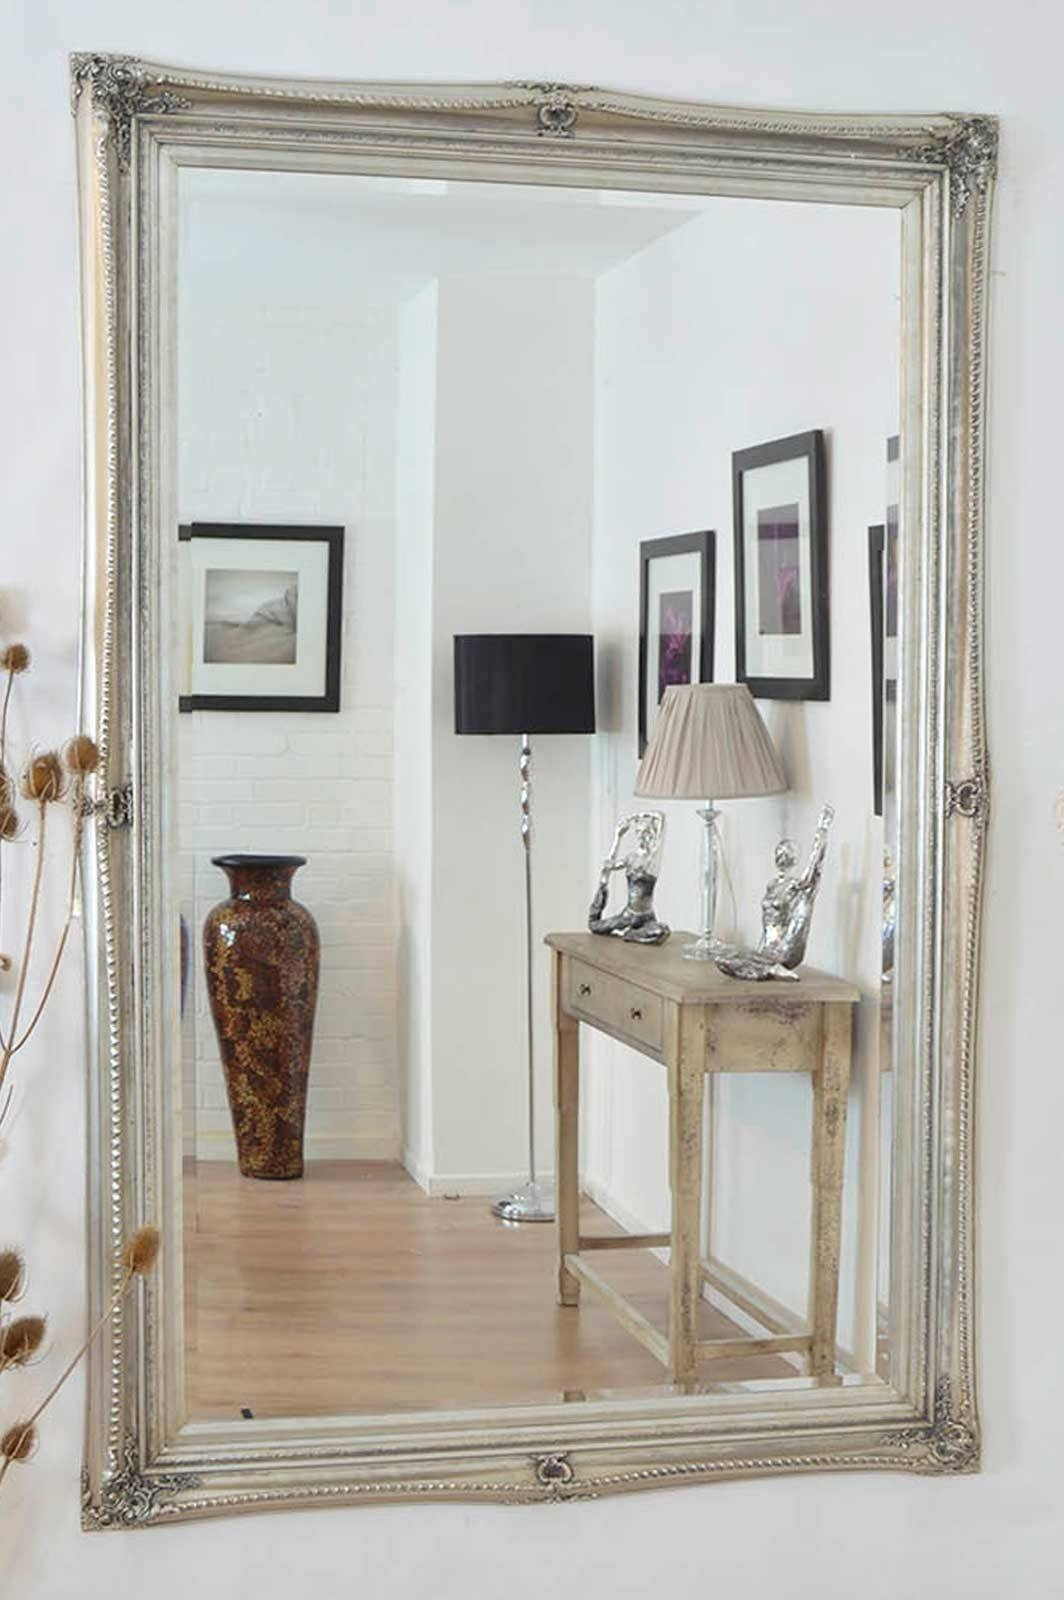 Shabby Chic Wall Mirror 130 Inspiring Style For Fabulous Large with regard to Large Shabby Chic Mirrors (Image 20 of 25)